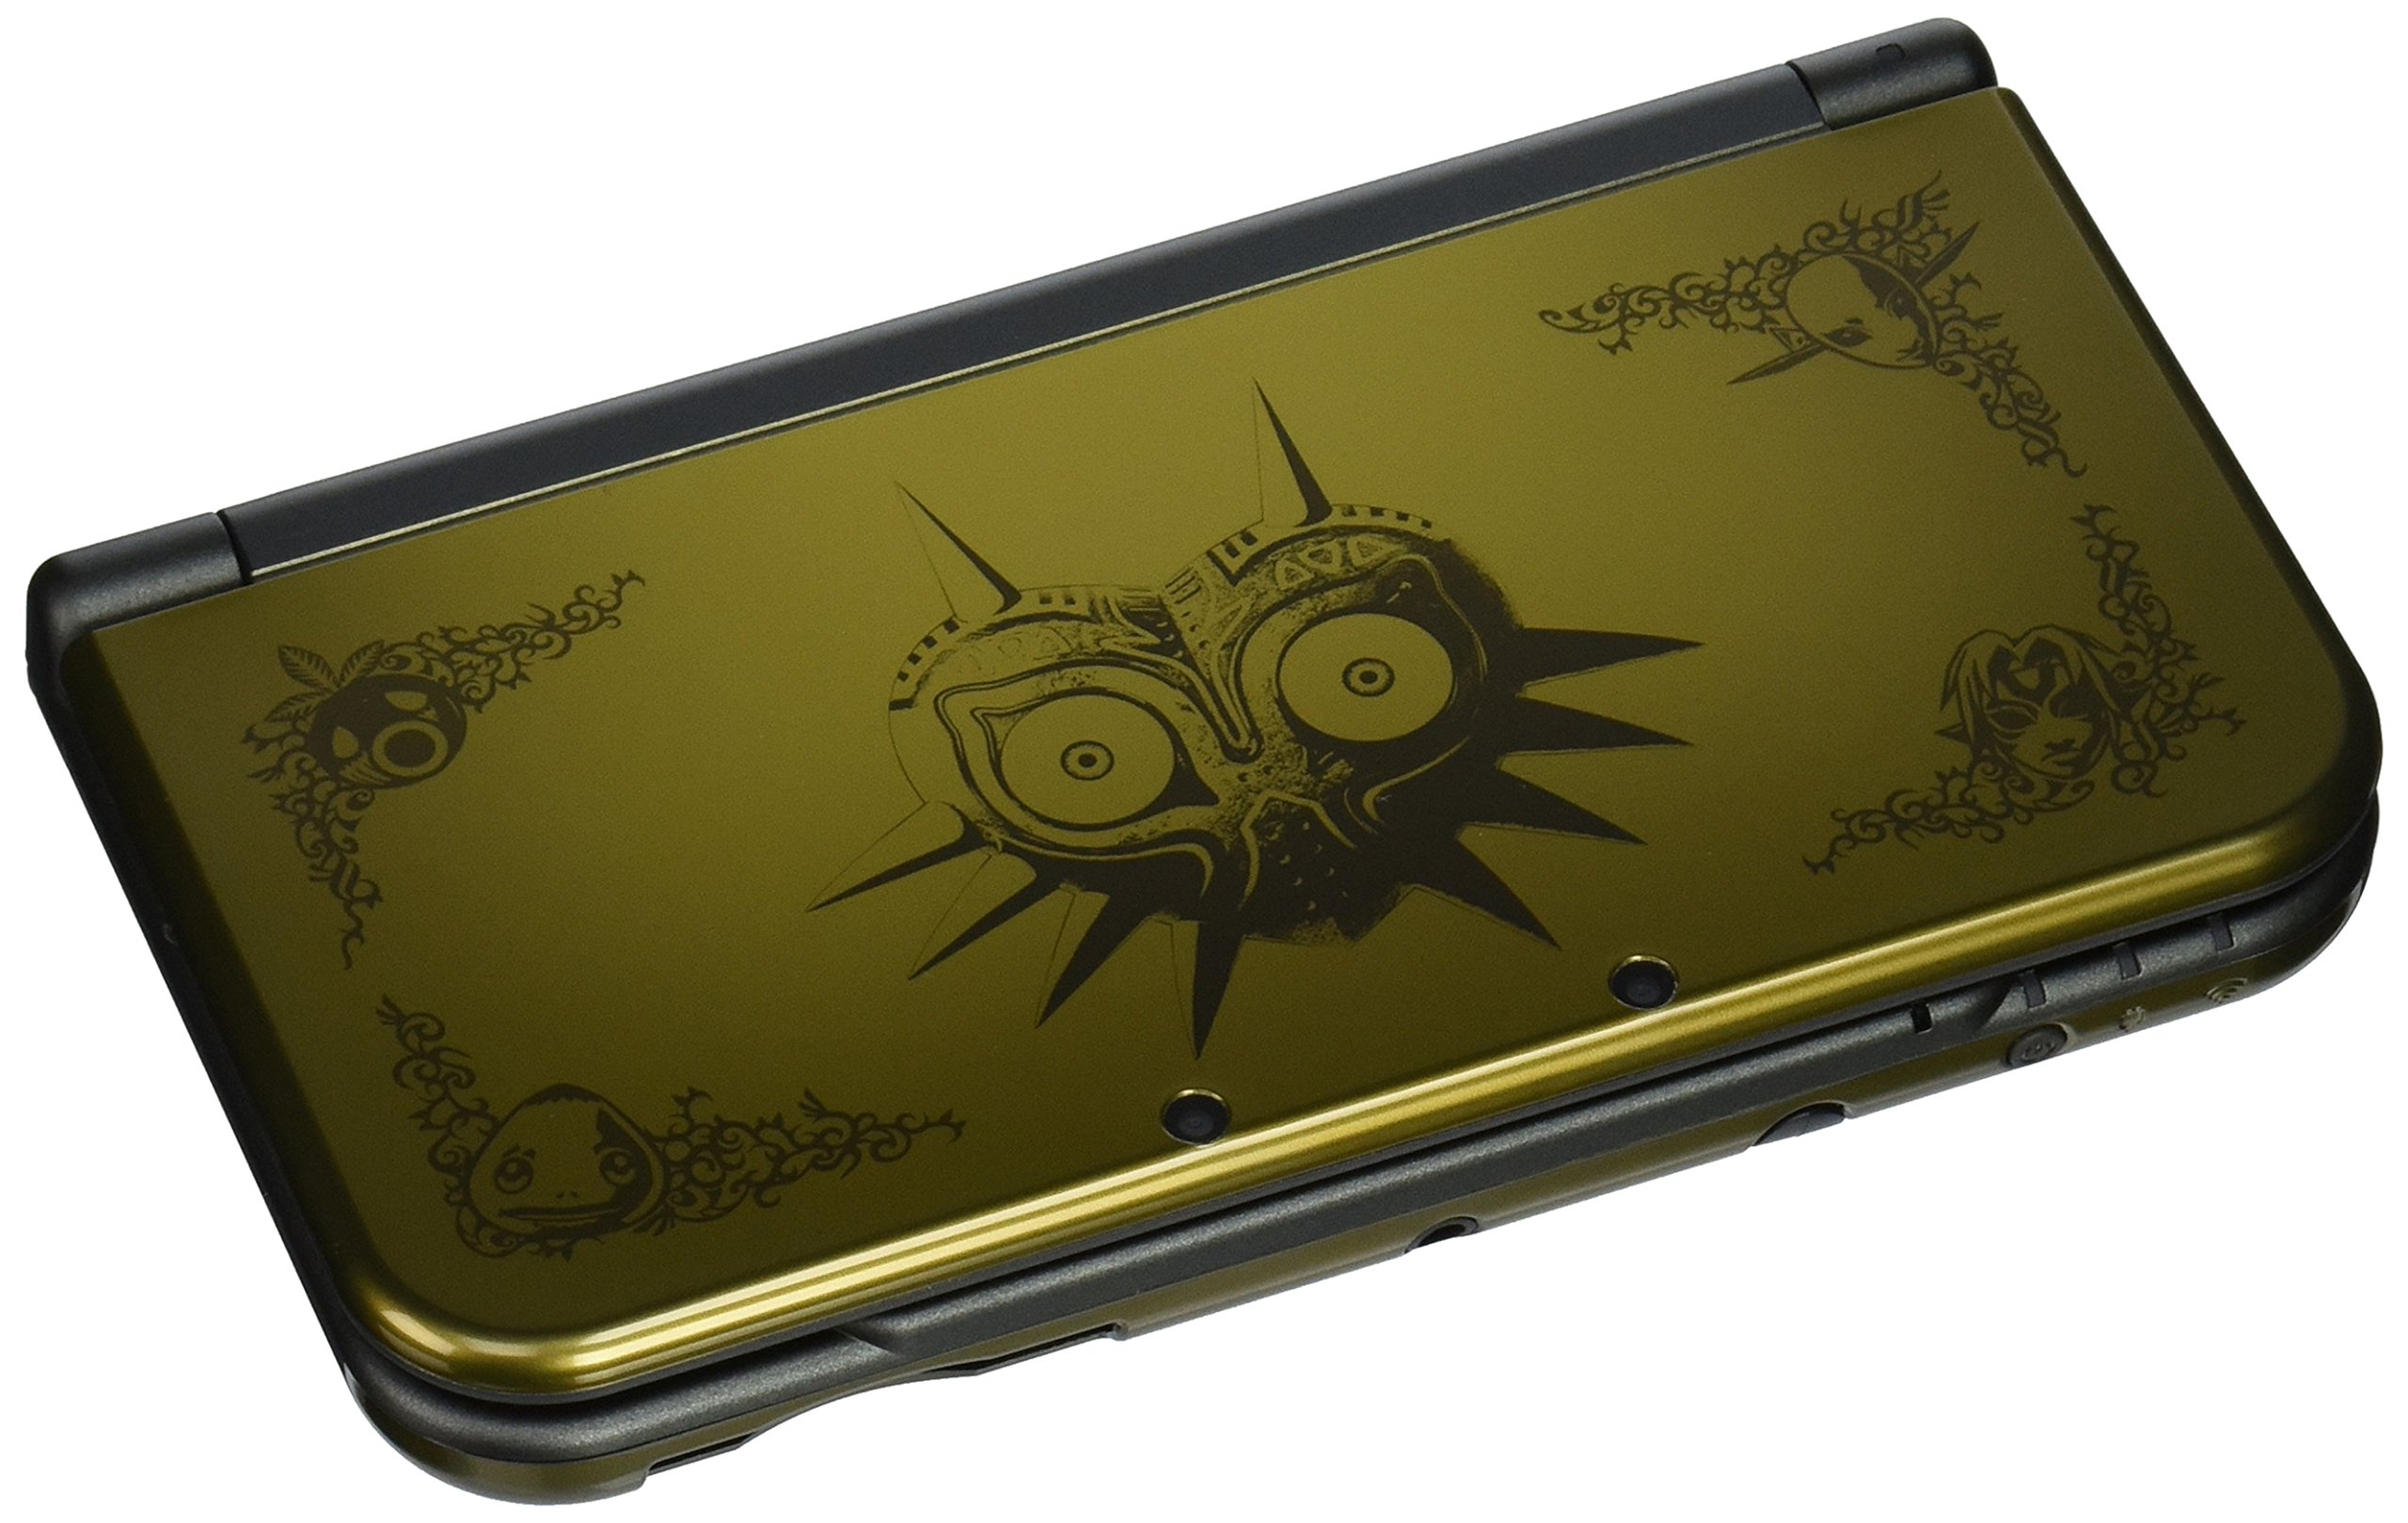 Nintendo - New 3DS XL Legend of Zelda: Majora's Mask Limited Edition - Gold/Black by Nintendo